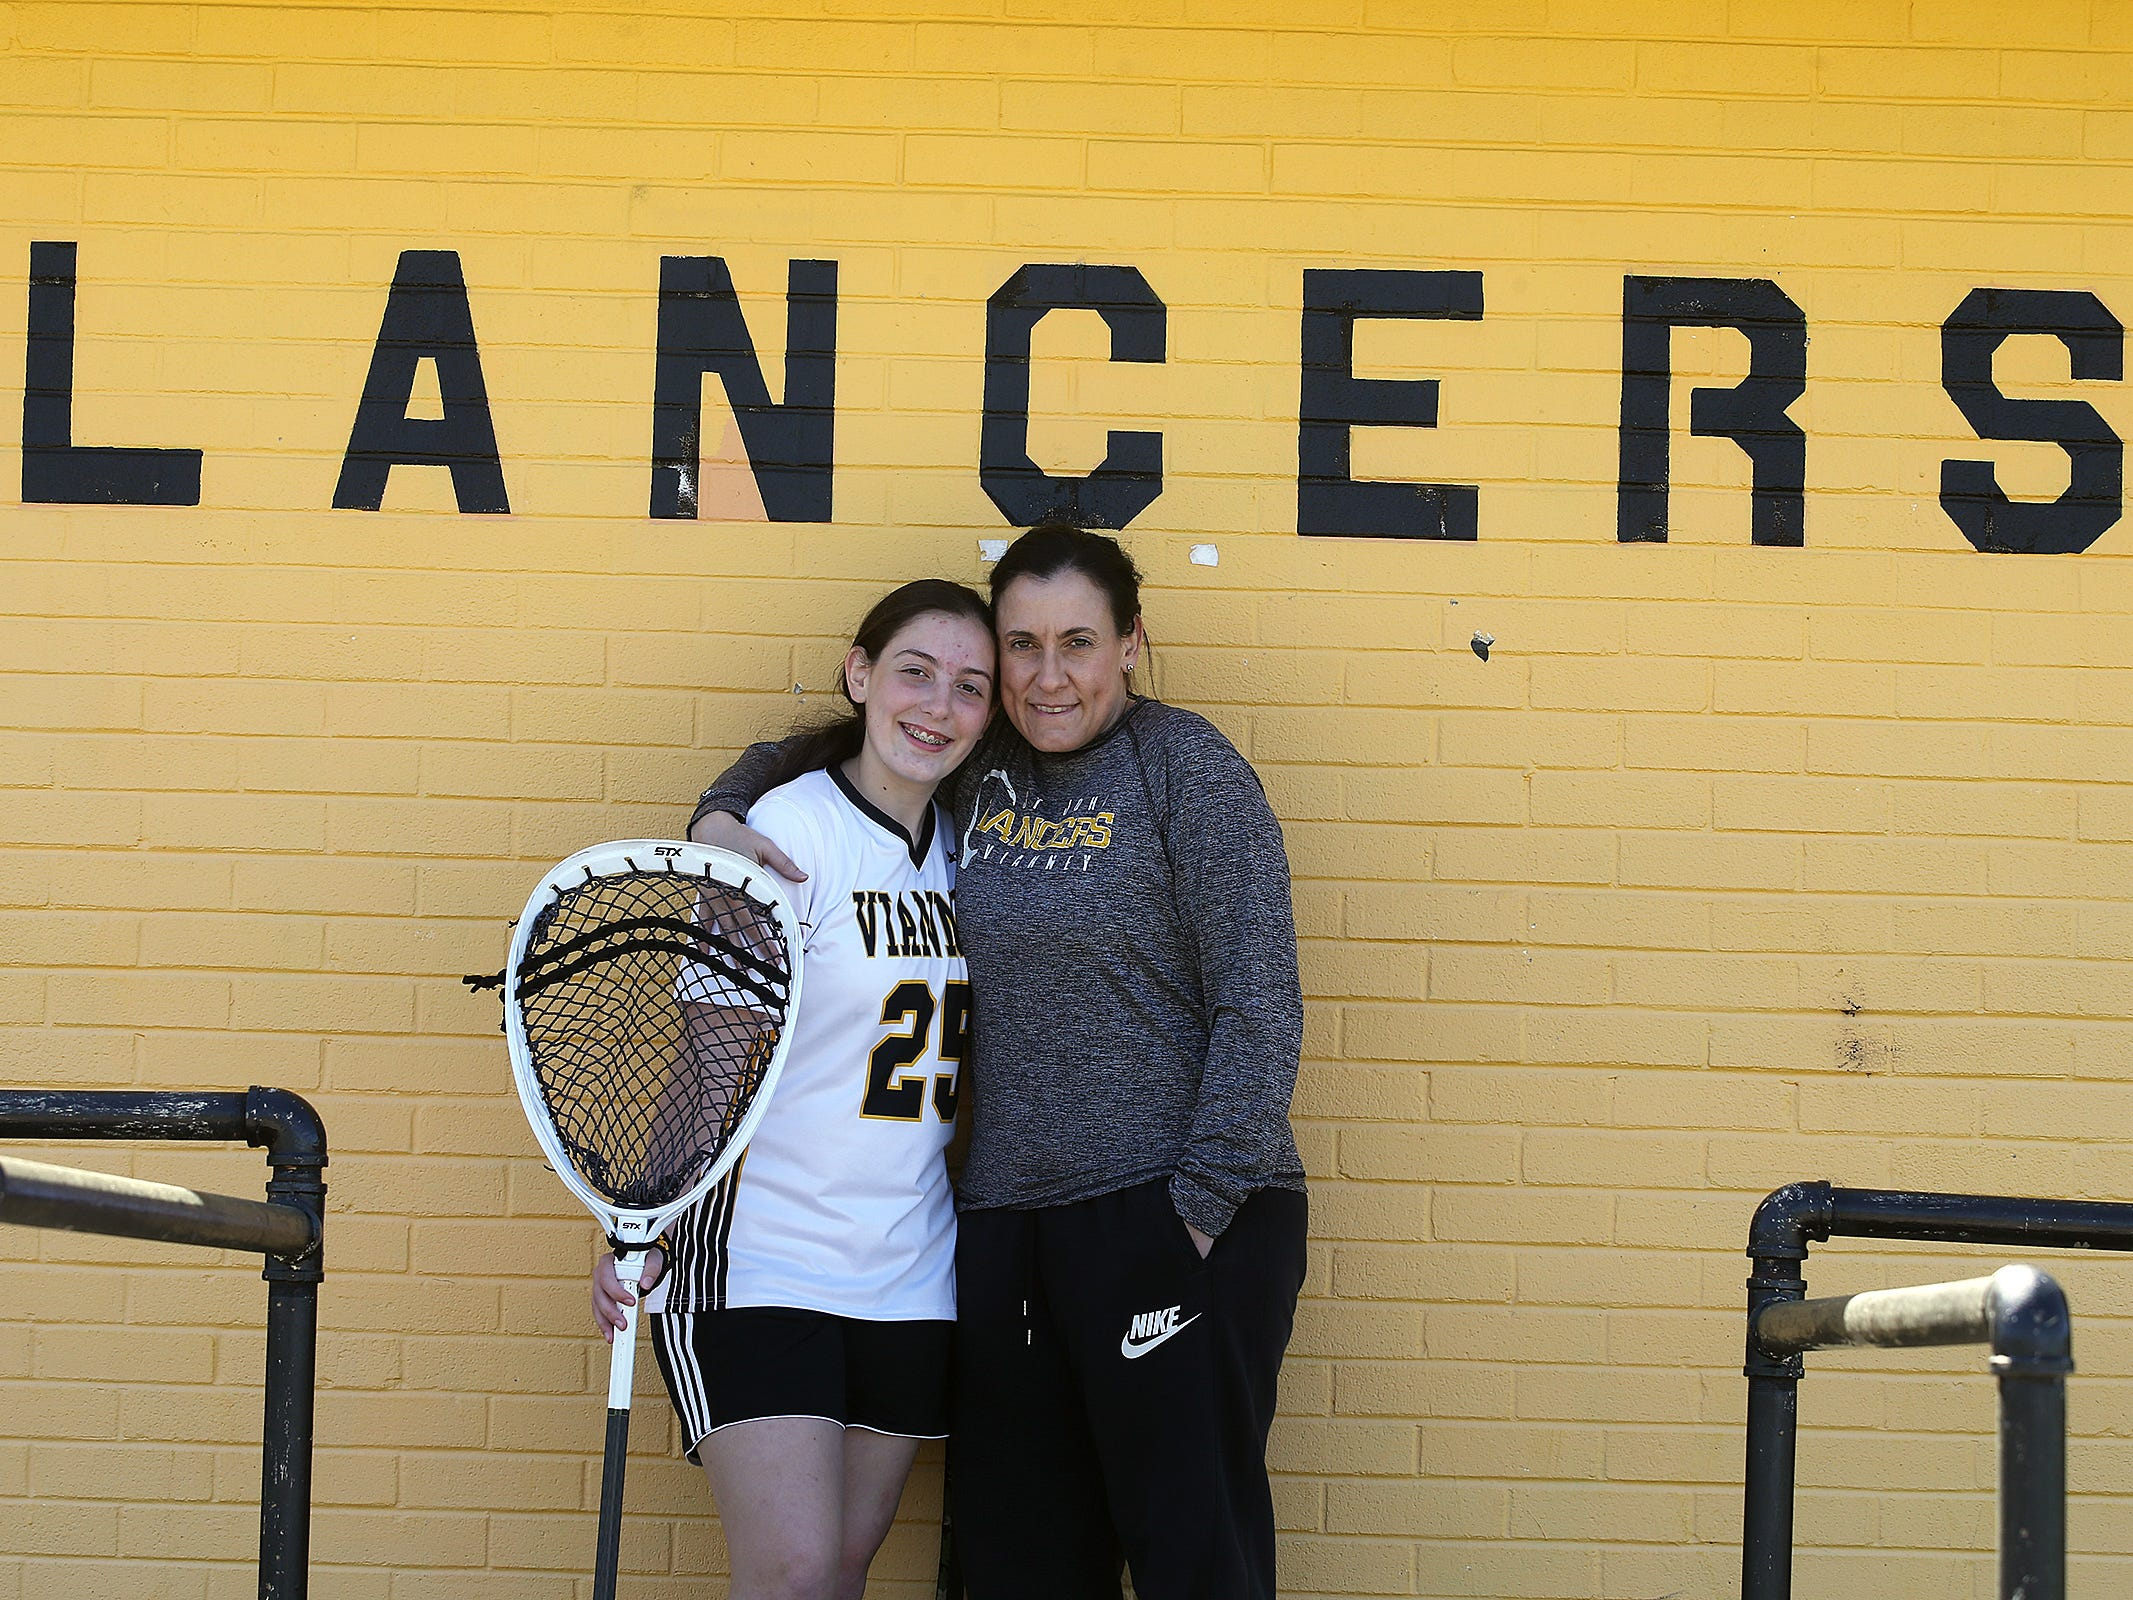 Teresa DiMezza, who is on a leave of absence from coaching the St. John Vianney girls lacrosse team, due to having a stroke late last year, hugs her daughter, Maddie, who is the goalie for the team, before a game against Neptune at St. John Vianney High School in Holmdel, NJ Wednesday, April 24, 2019.